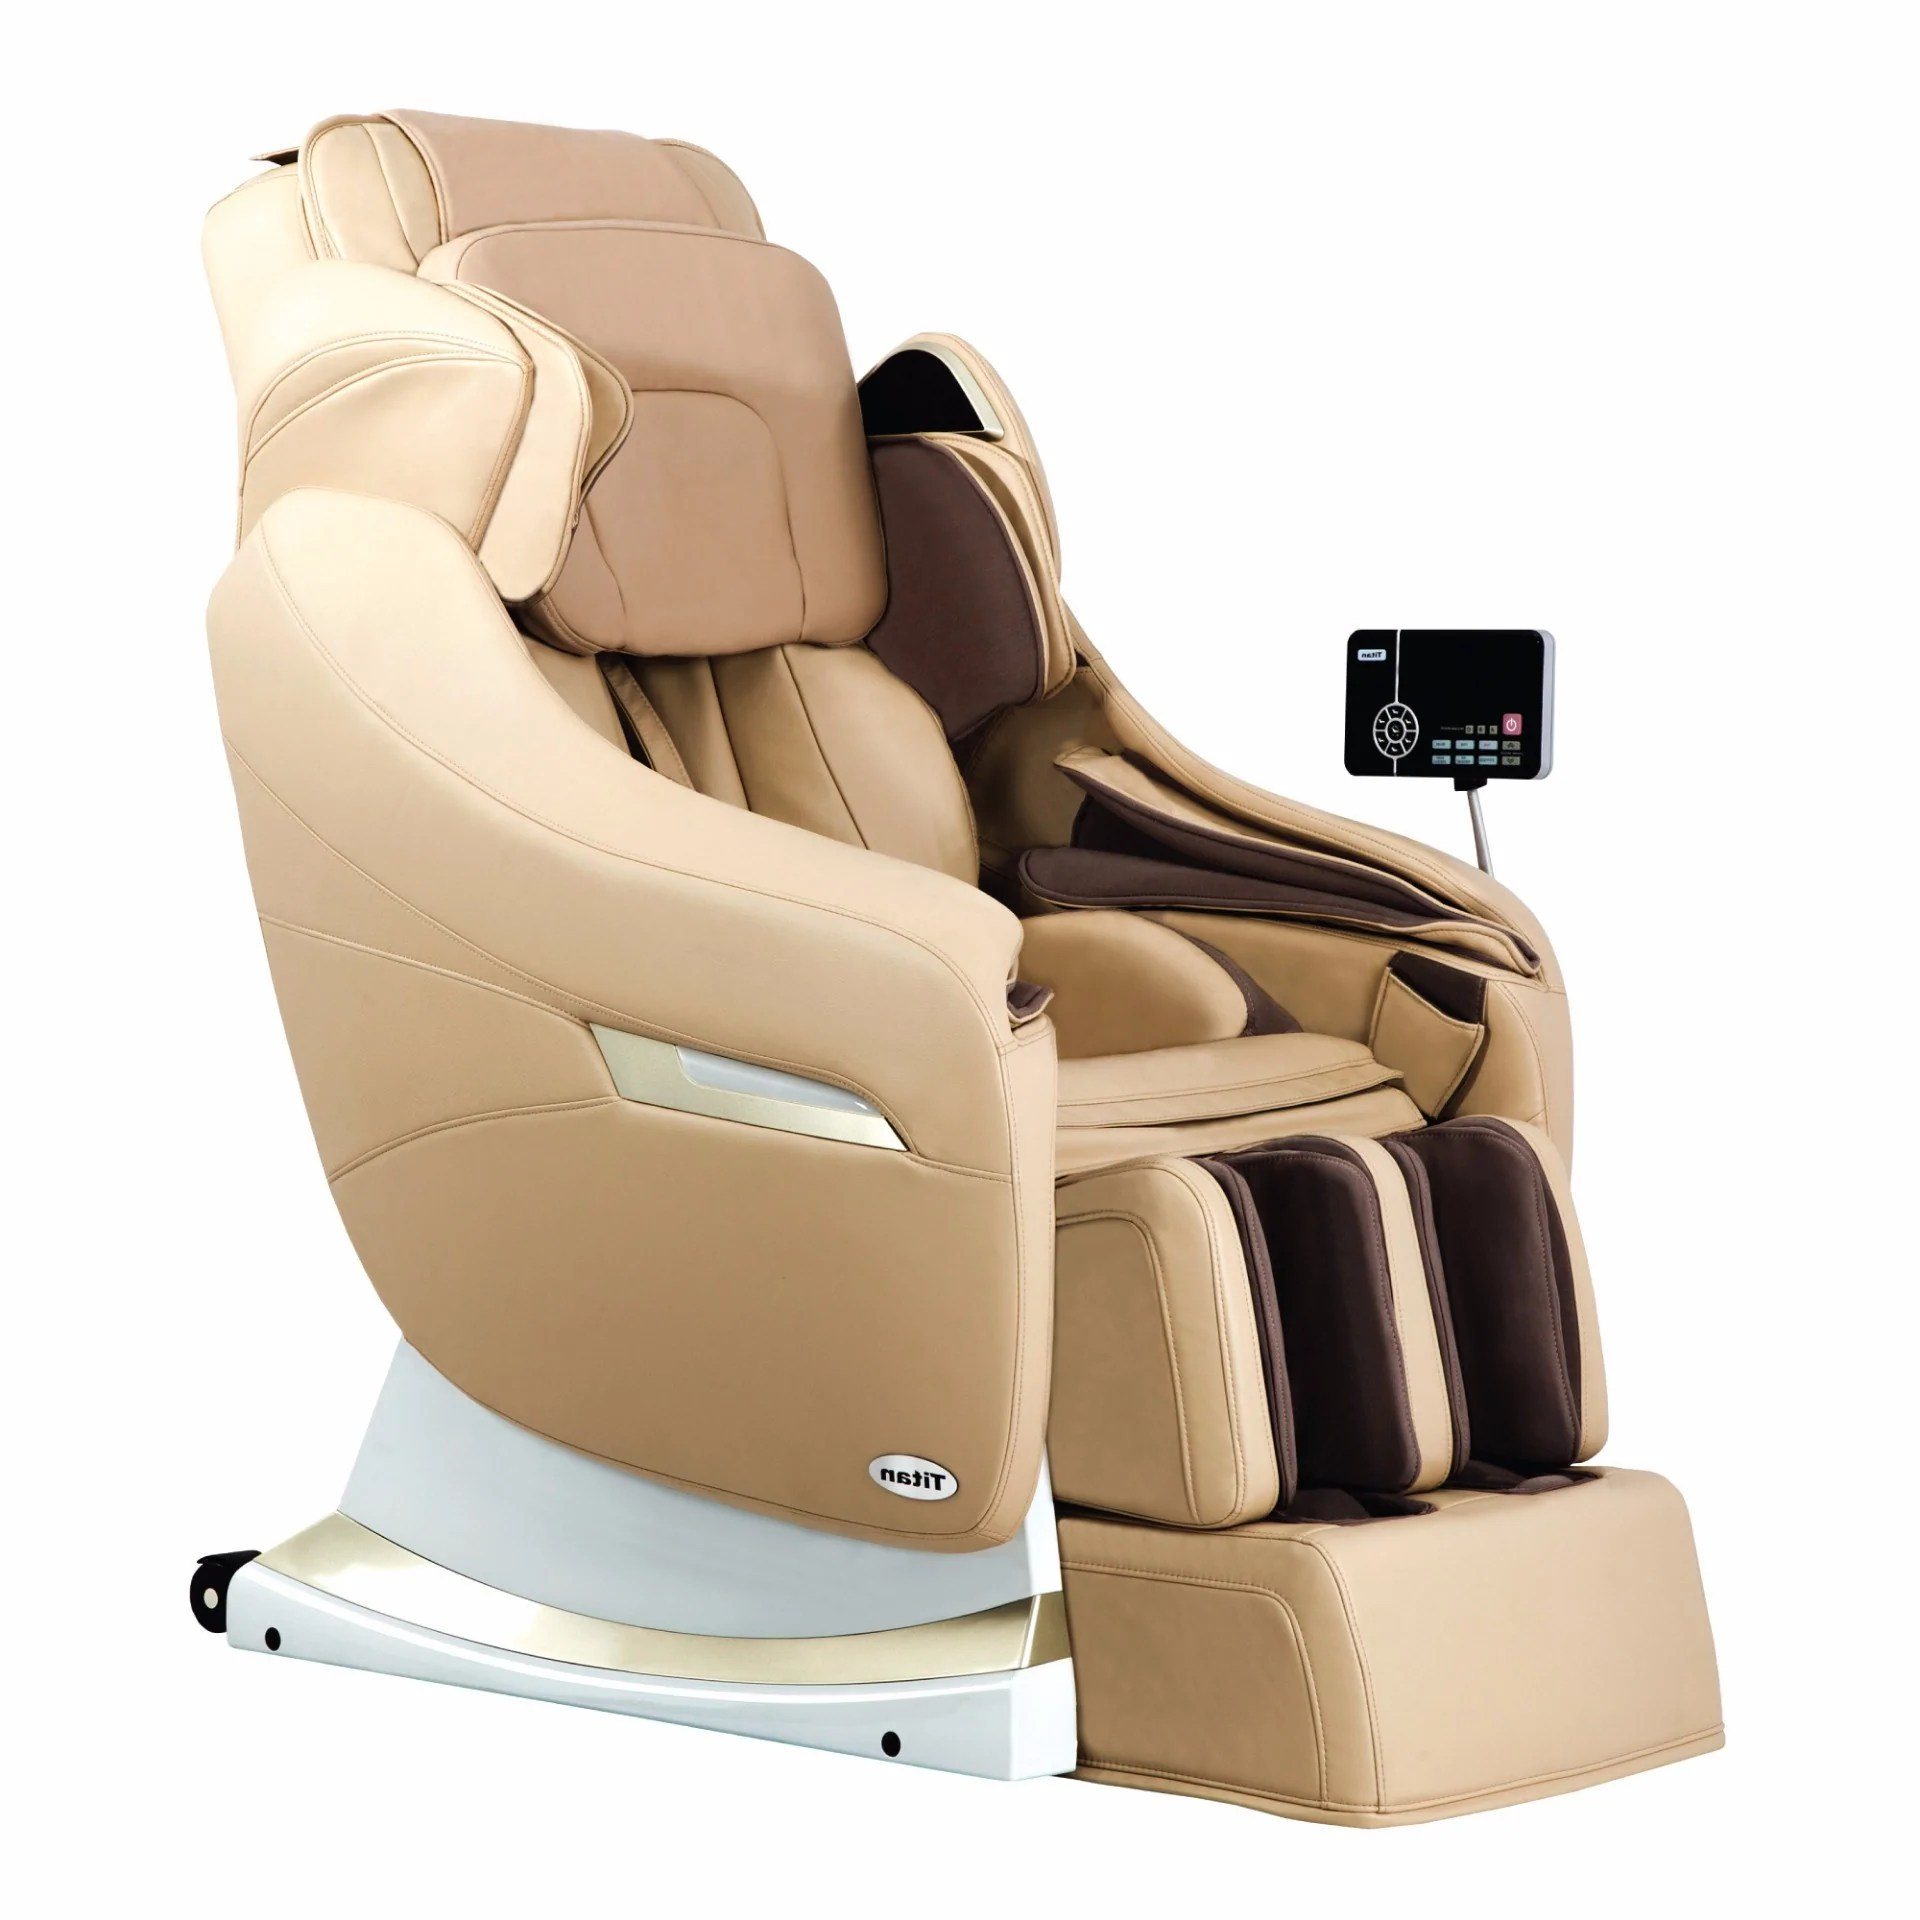 johnson massage chair swivel for hunting now save 1000 titan tp pro executive 3d